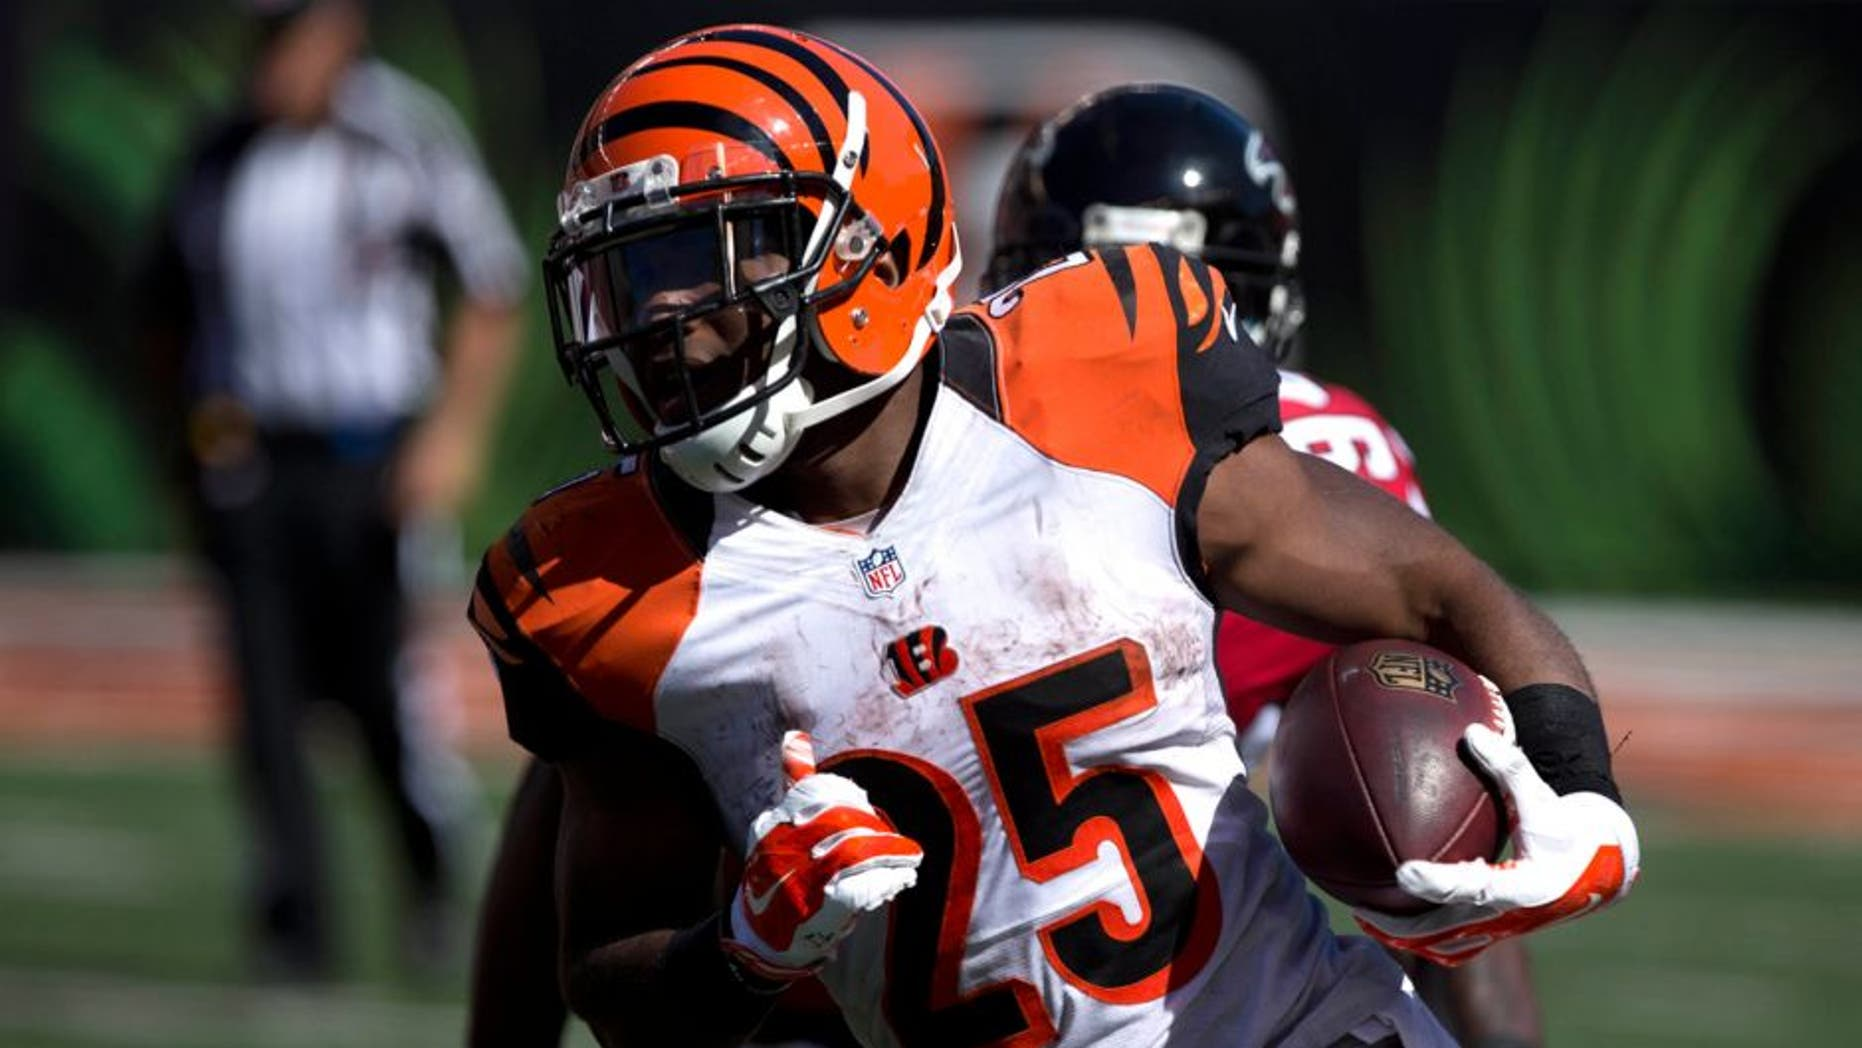 Sep 14, 2014; Cincinnati, OH, USA; Cincinnati Bengals running back Giovani Bernard (25) carries the ball in the second half against the Atlanta Falcons at Paul Brown Stadium. The Bengals won 24-10. Mandatory Credit: Aaron Doster-USA TODAY Sports